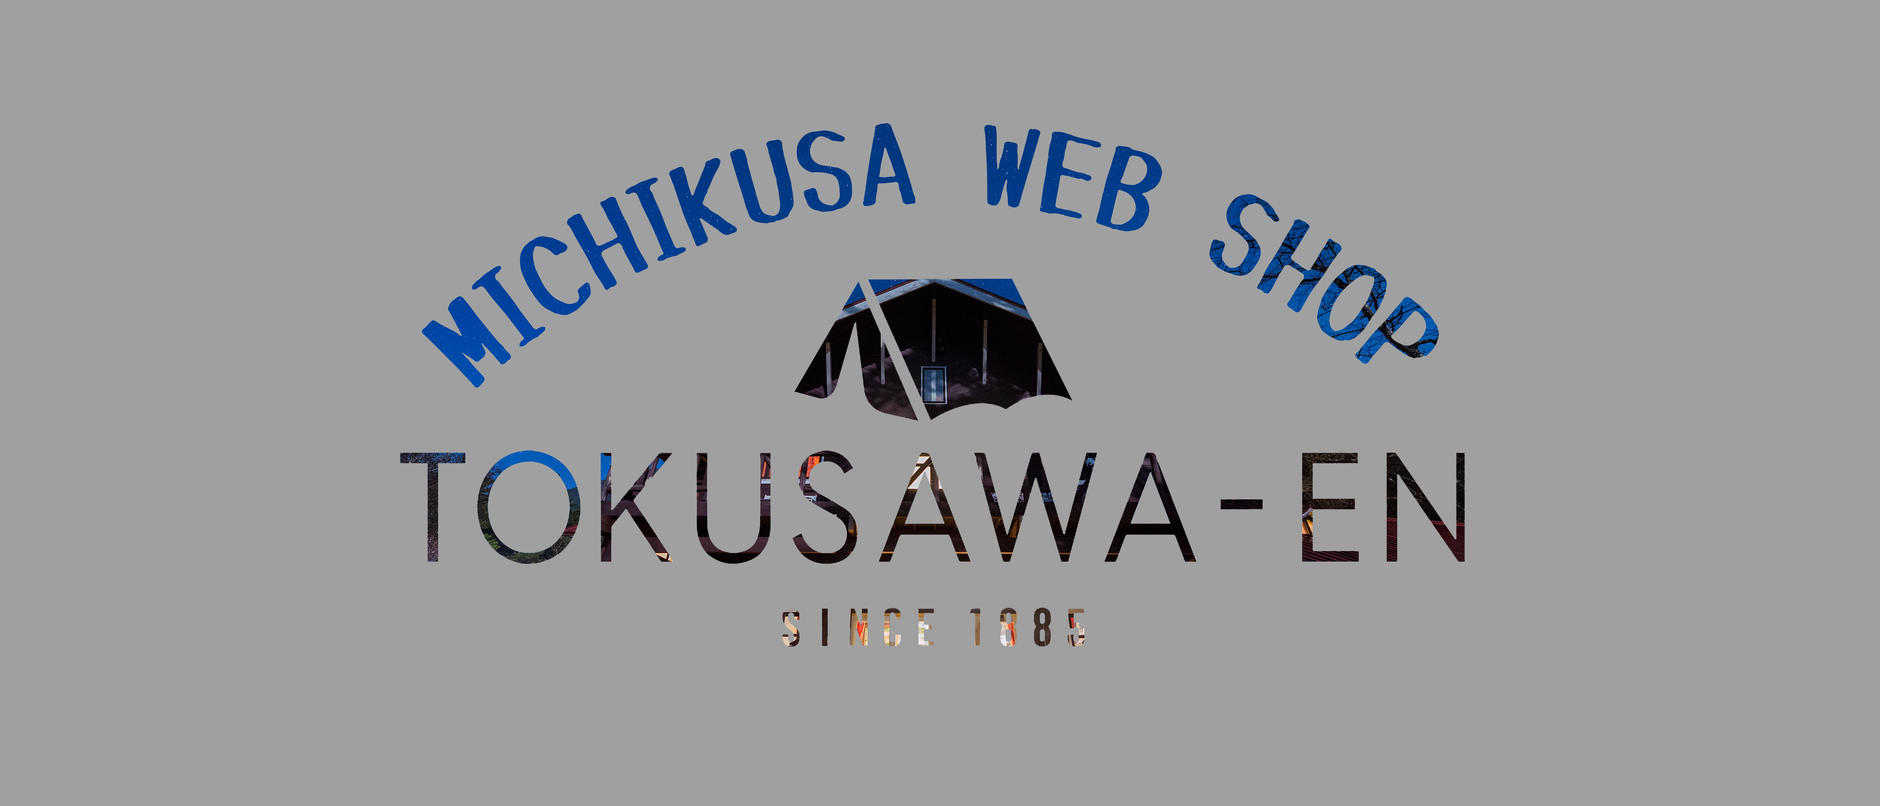 MICHIKUSA WEB SHOP